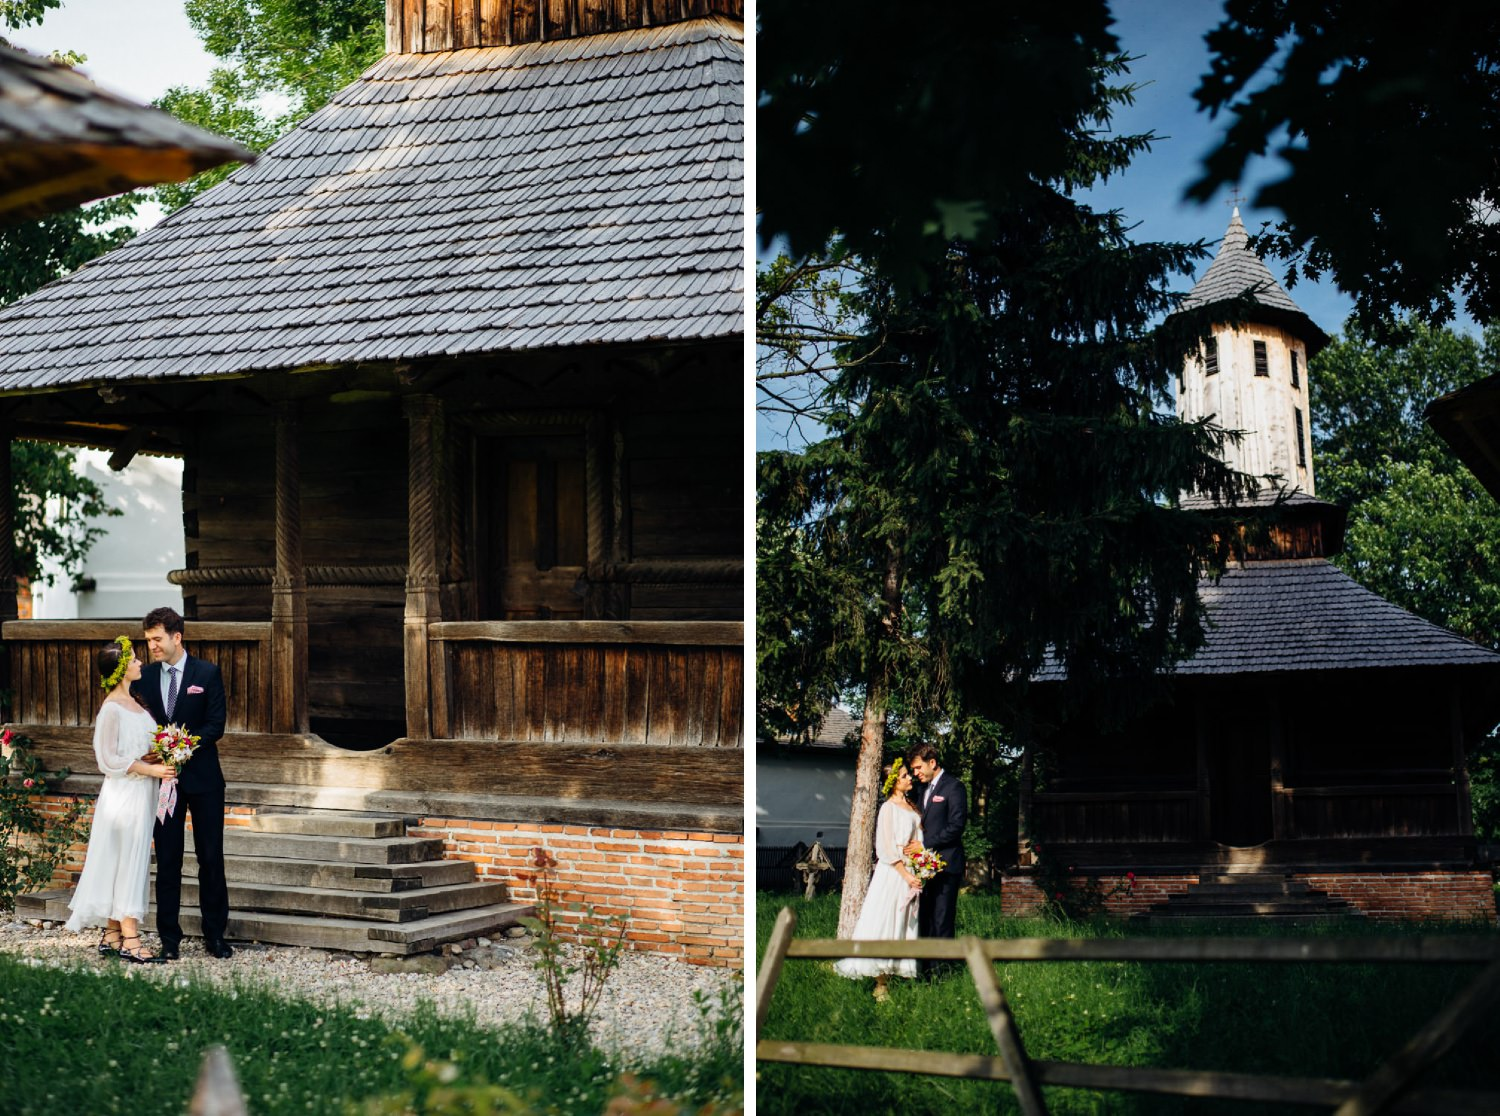 Bogdan & Luiza civil wedding Pitesti-1072